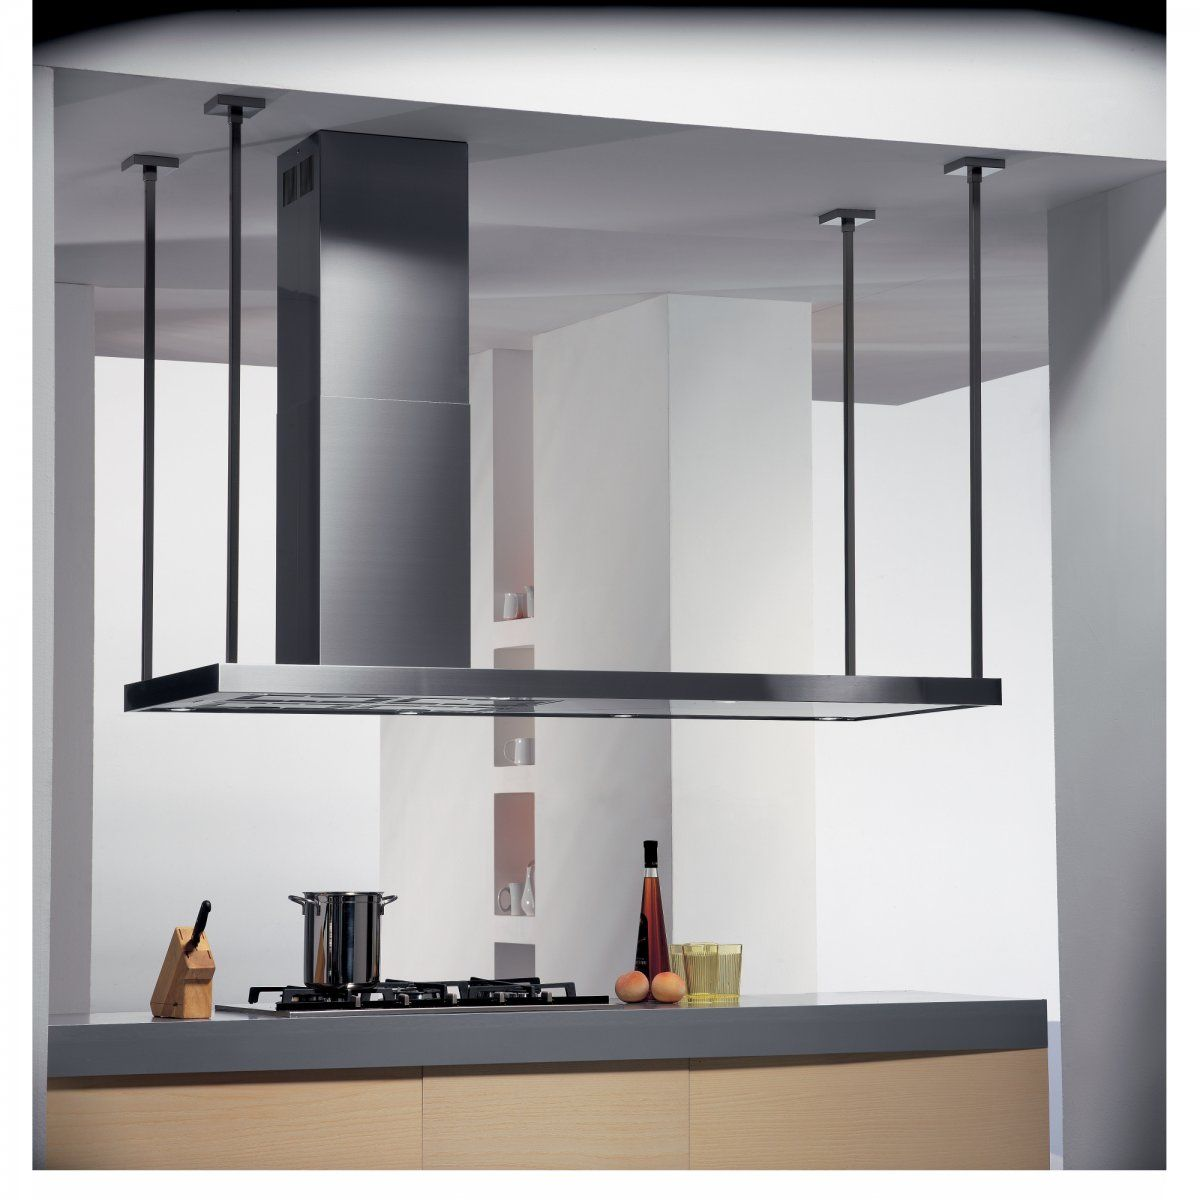 Pin di Keihome su Airone nel 2019  Kitchen interior Kitchen time e Cooker hoods